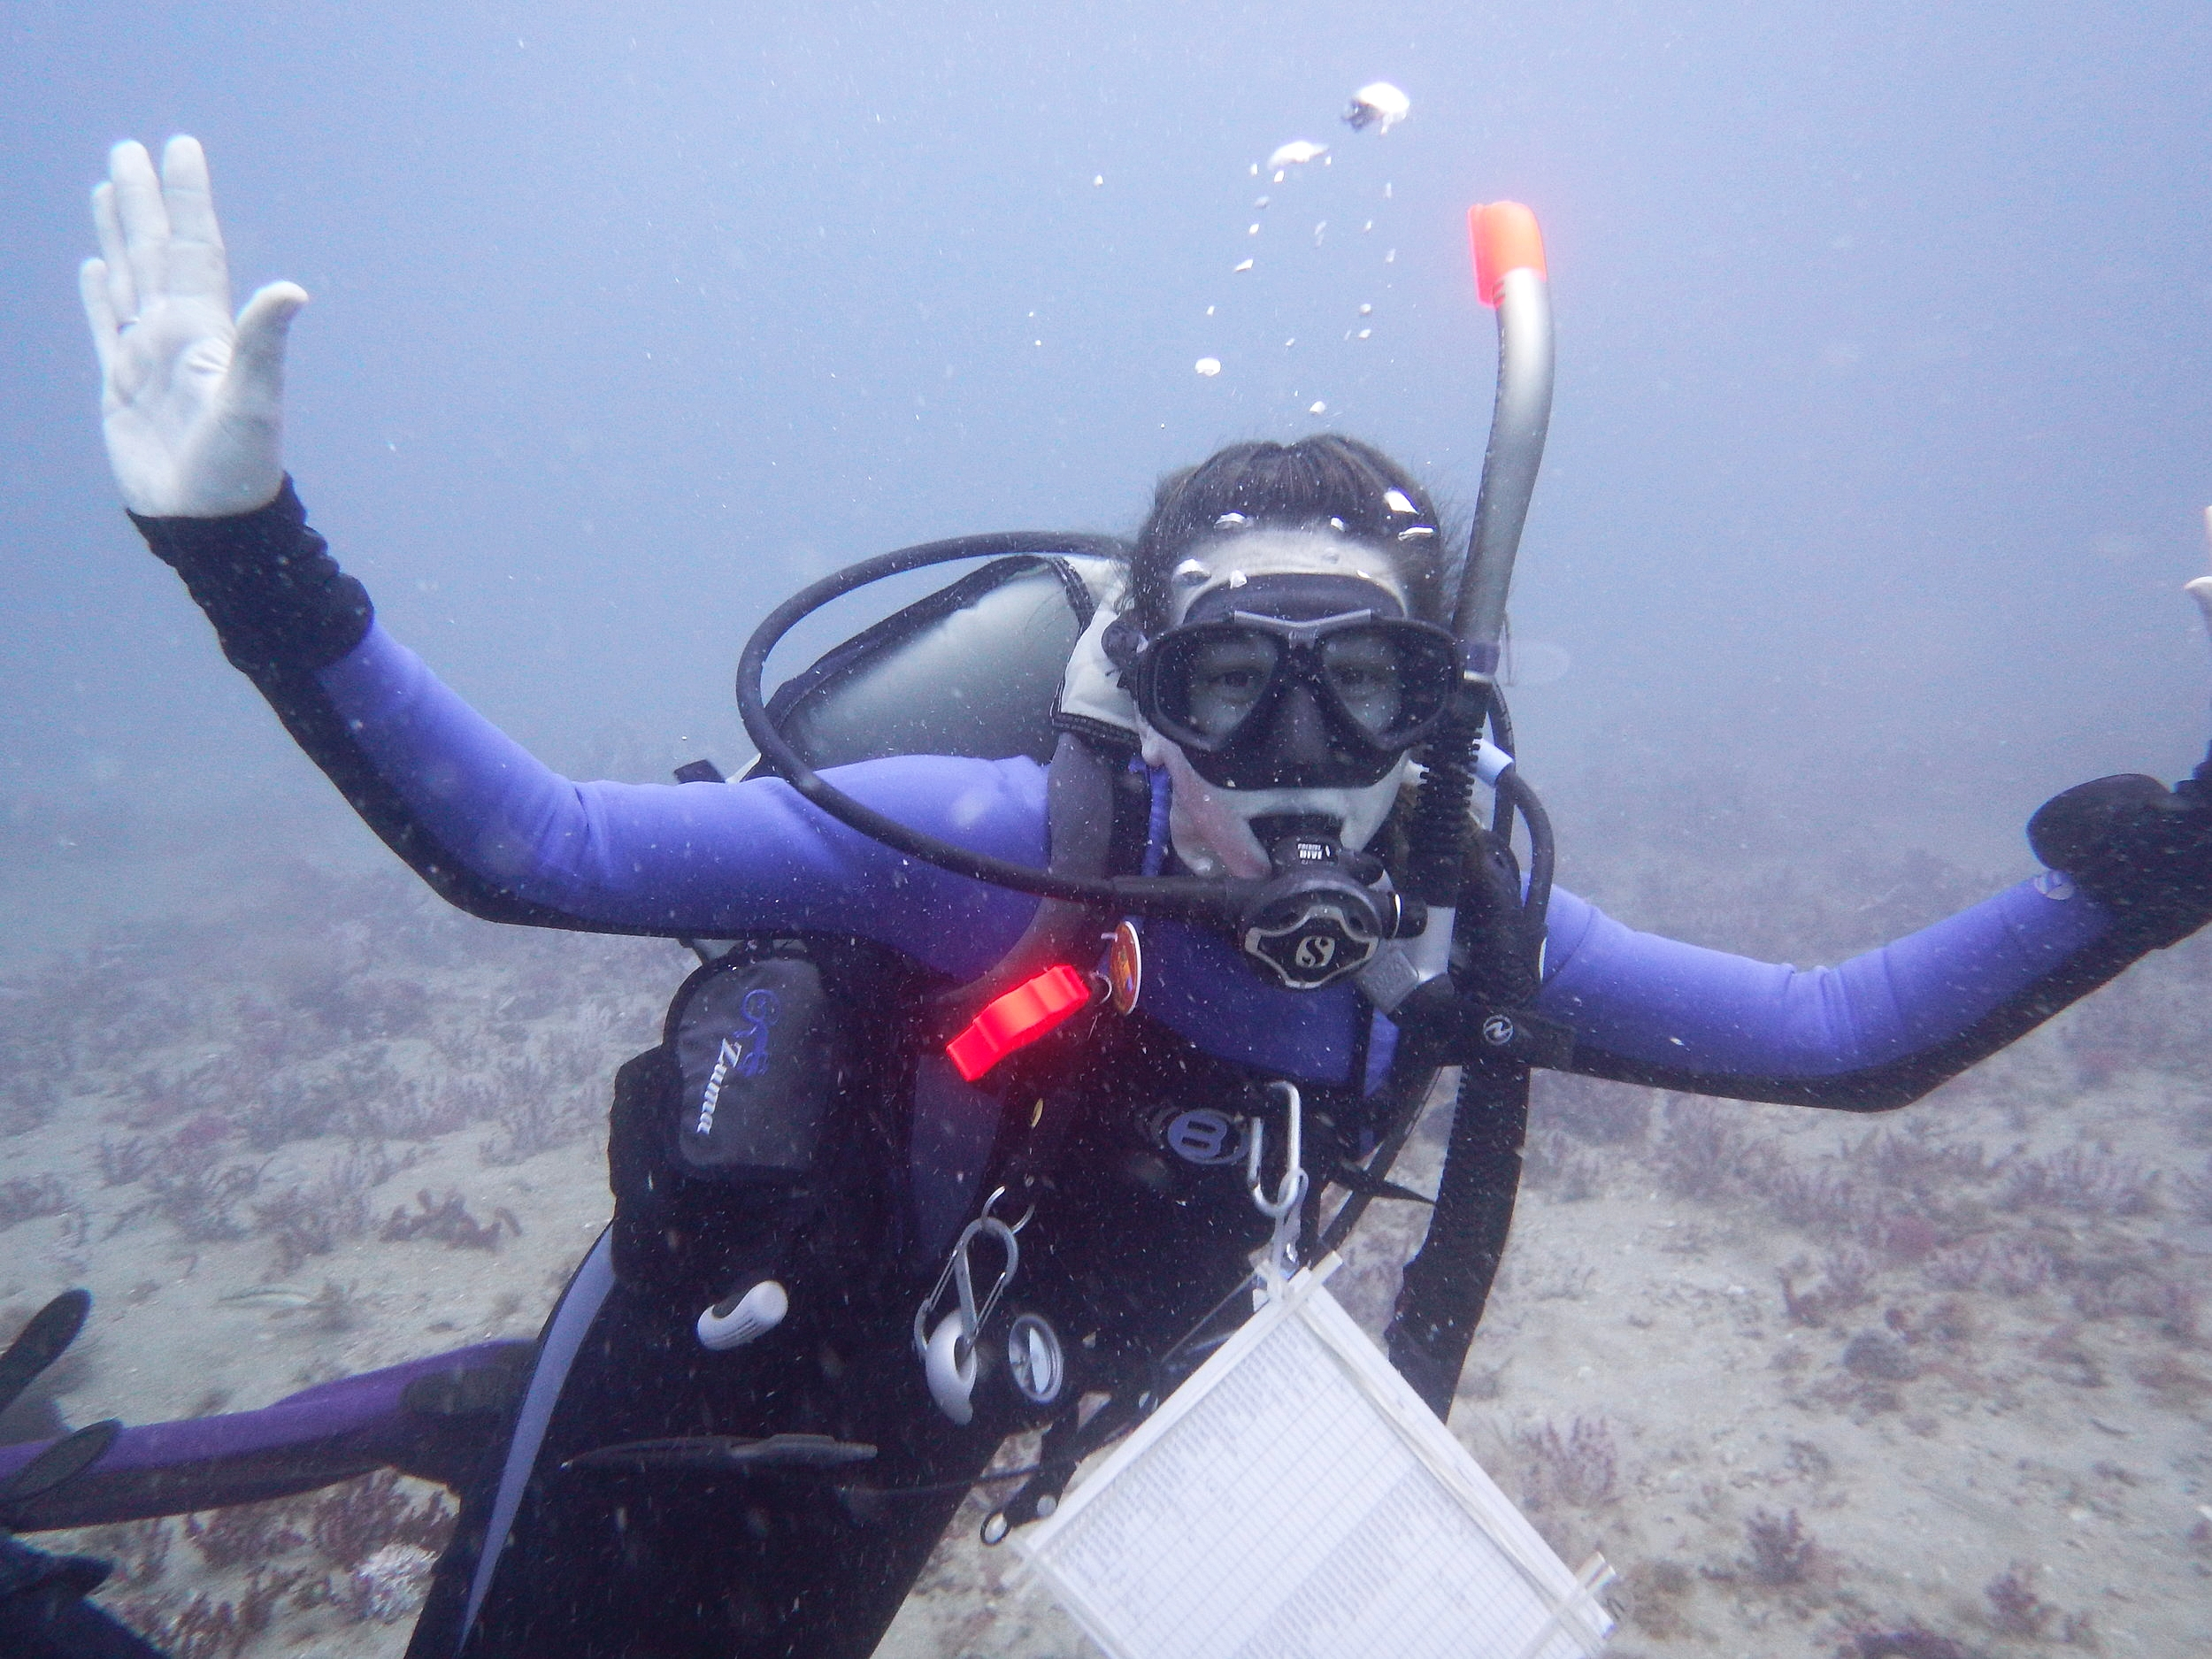 "Photo of Alicia scuba diving at Gray's Reef. ""Getting excited about being the first people to dive at this never-before-explored dive site found during the acoustic surveys."" - Alicia. Credit: Brianne Varnerin."